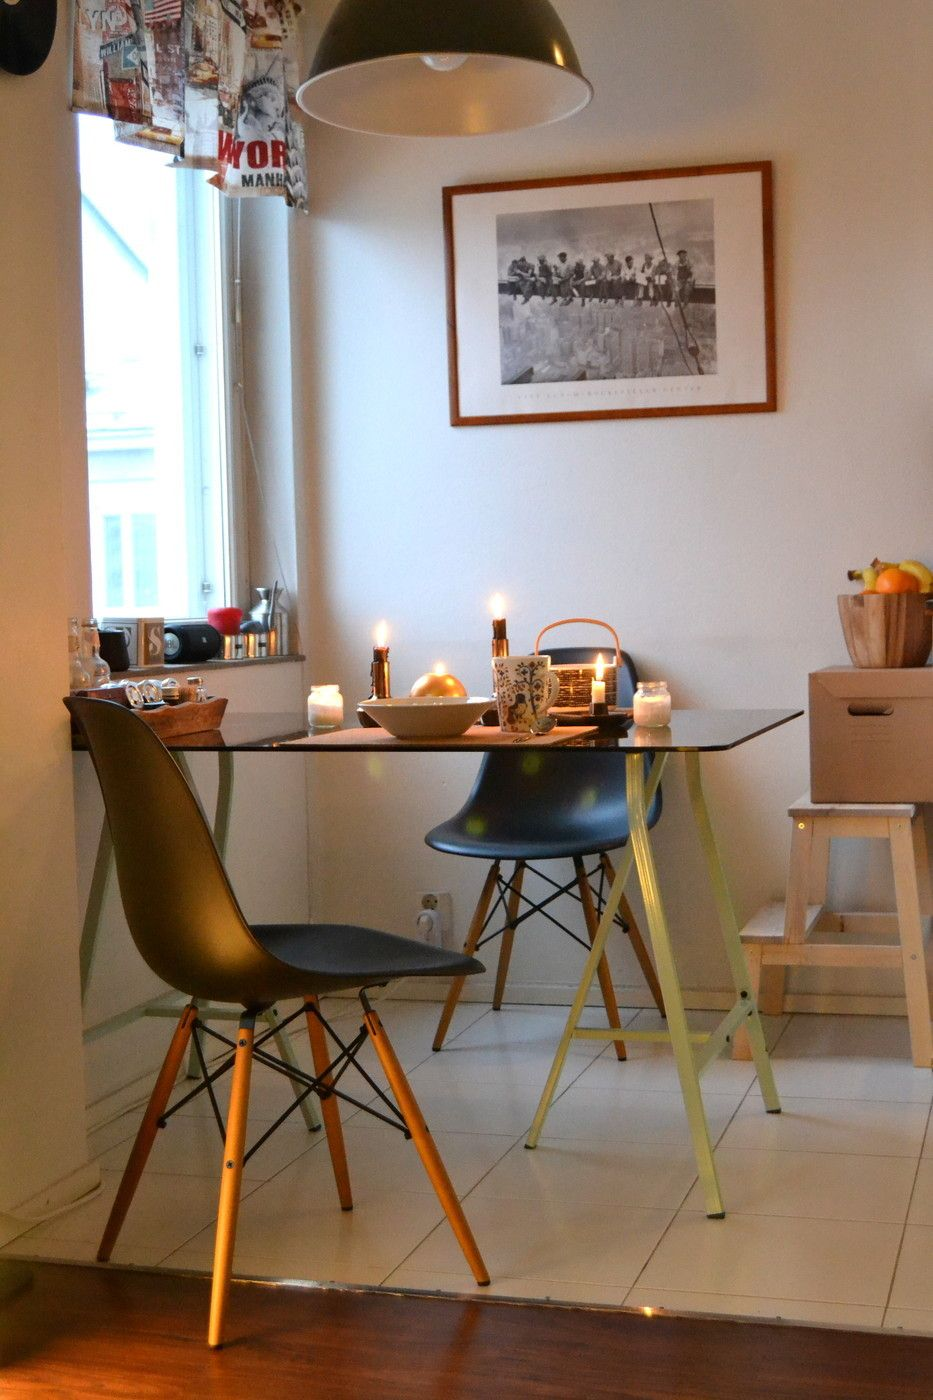 Eames DSW chairs with black seat. Check out this kitchen's style!